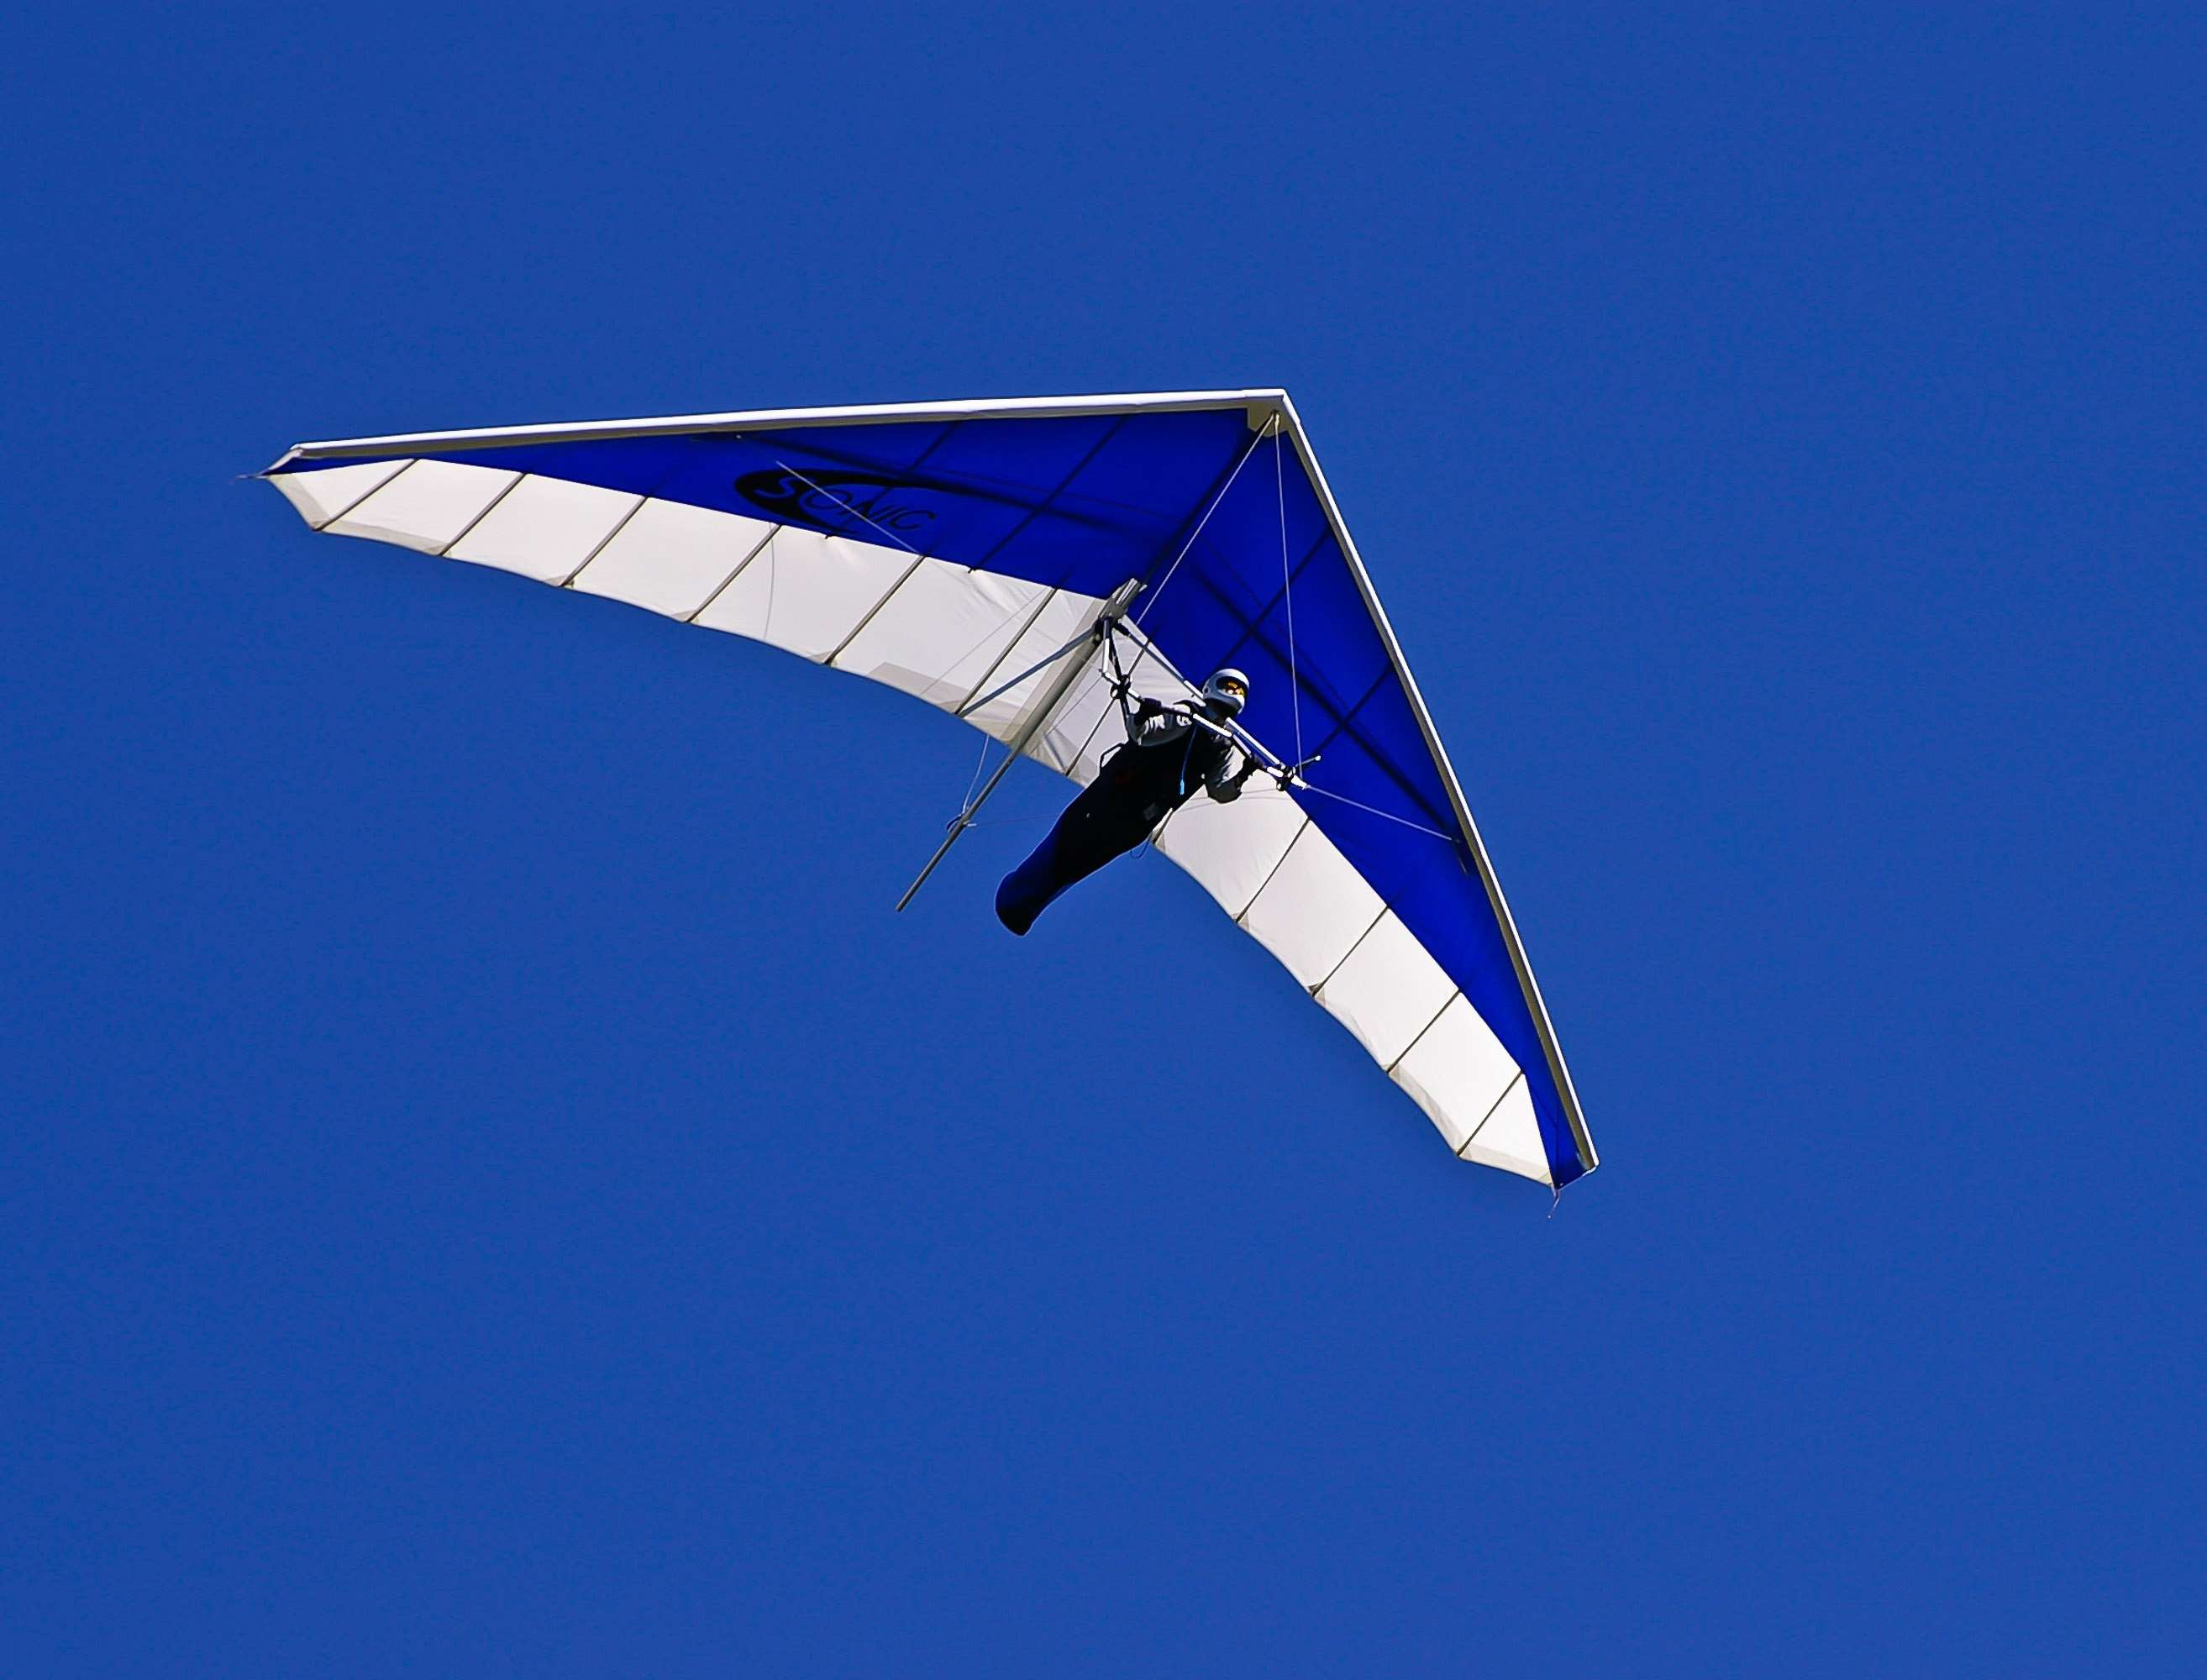 2627x2000 - Hang Gliding Wallpapers 36